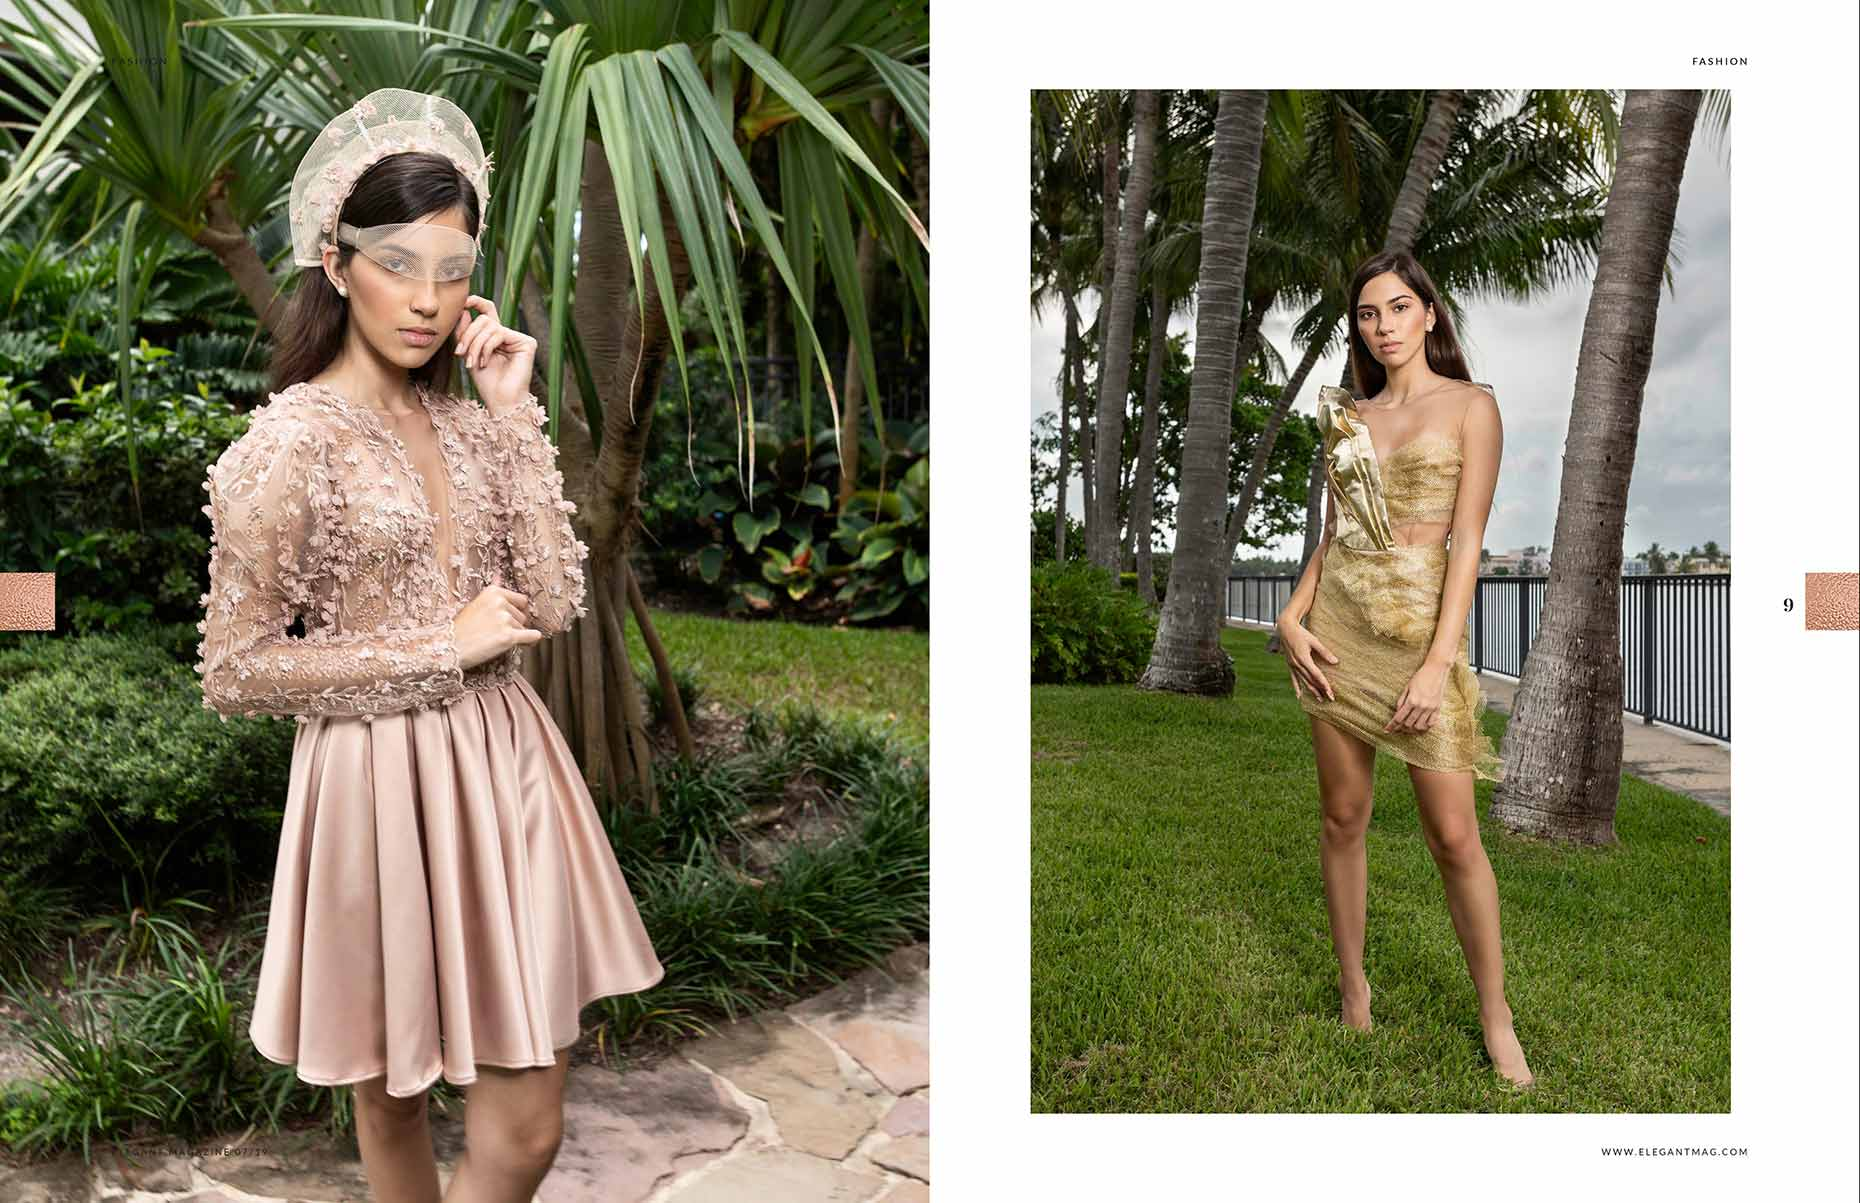 robyfabro.com/fashion-photography/fashion-photographers-miami-12